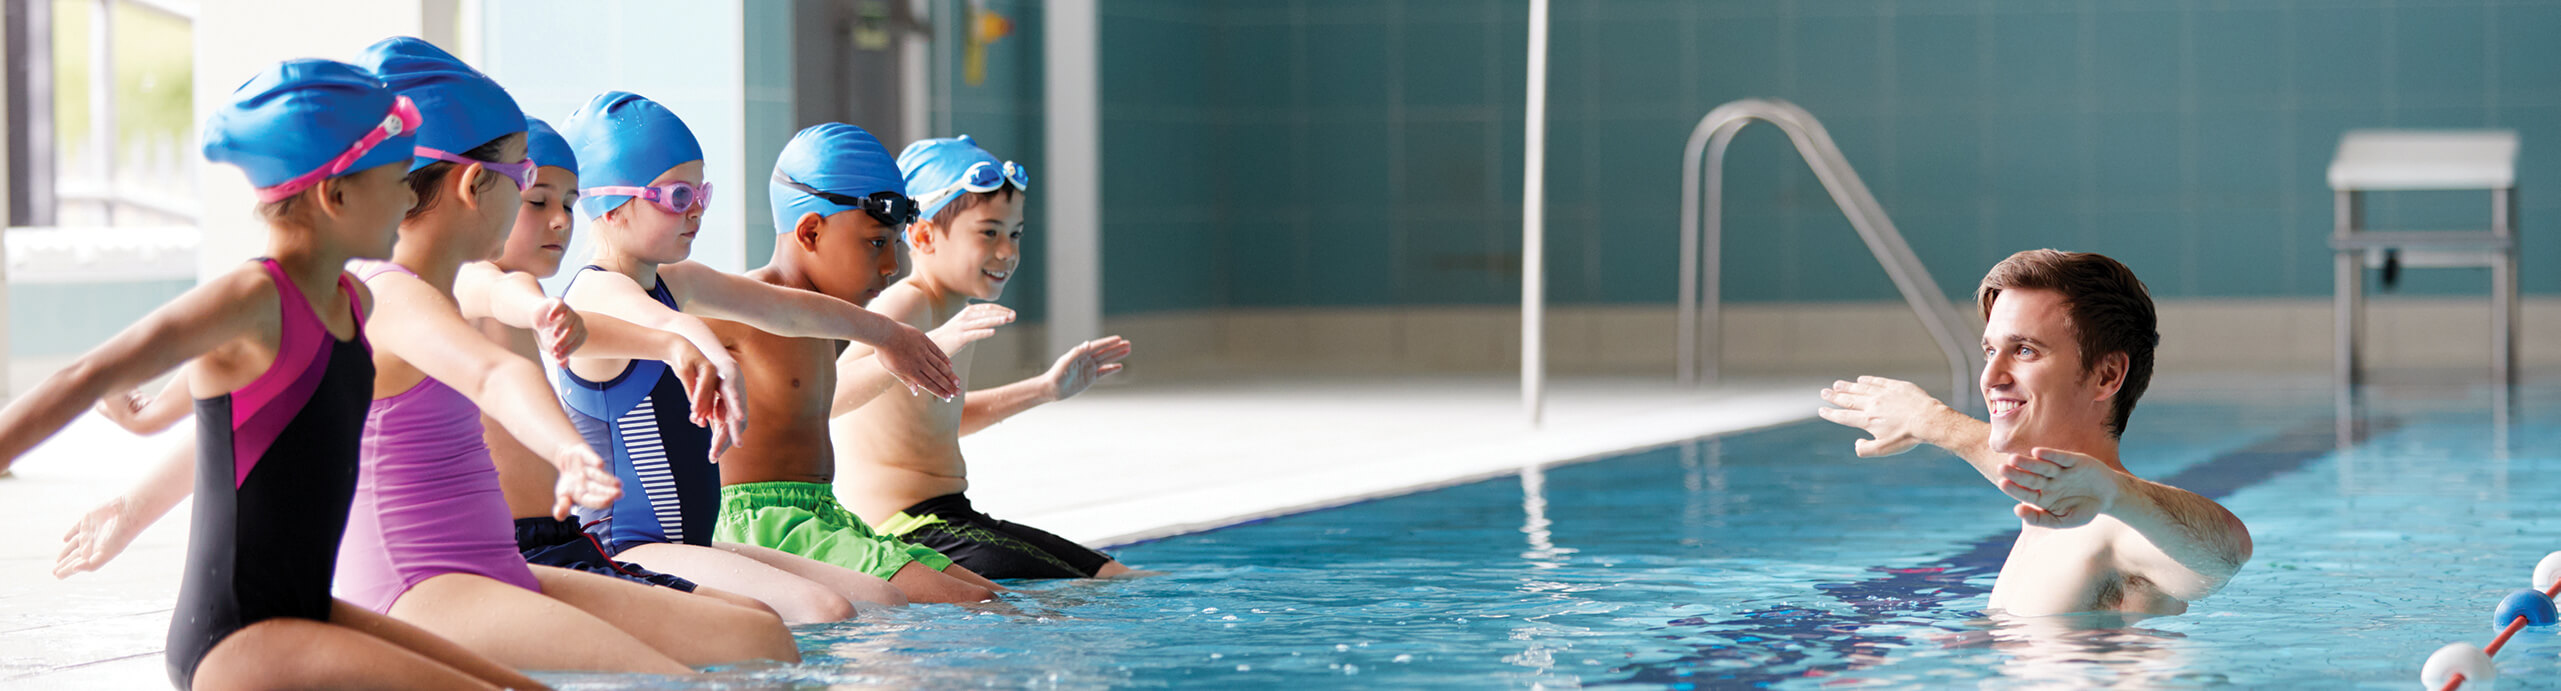 Aquatic Centers & Swim Schools